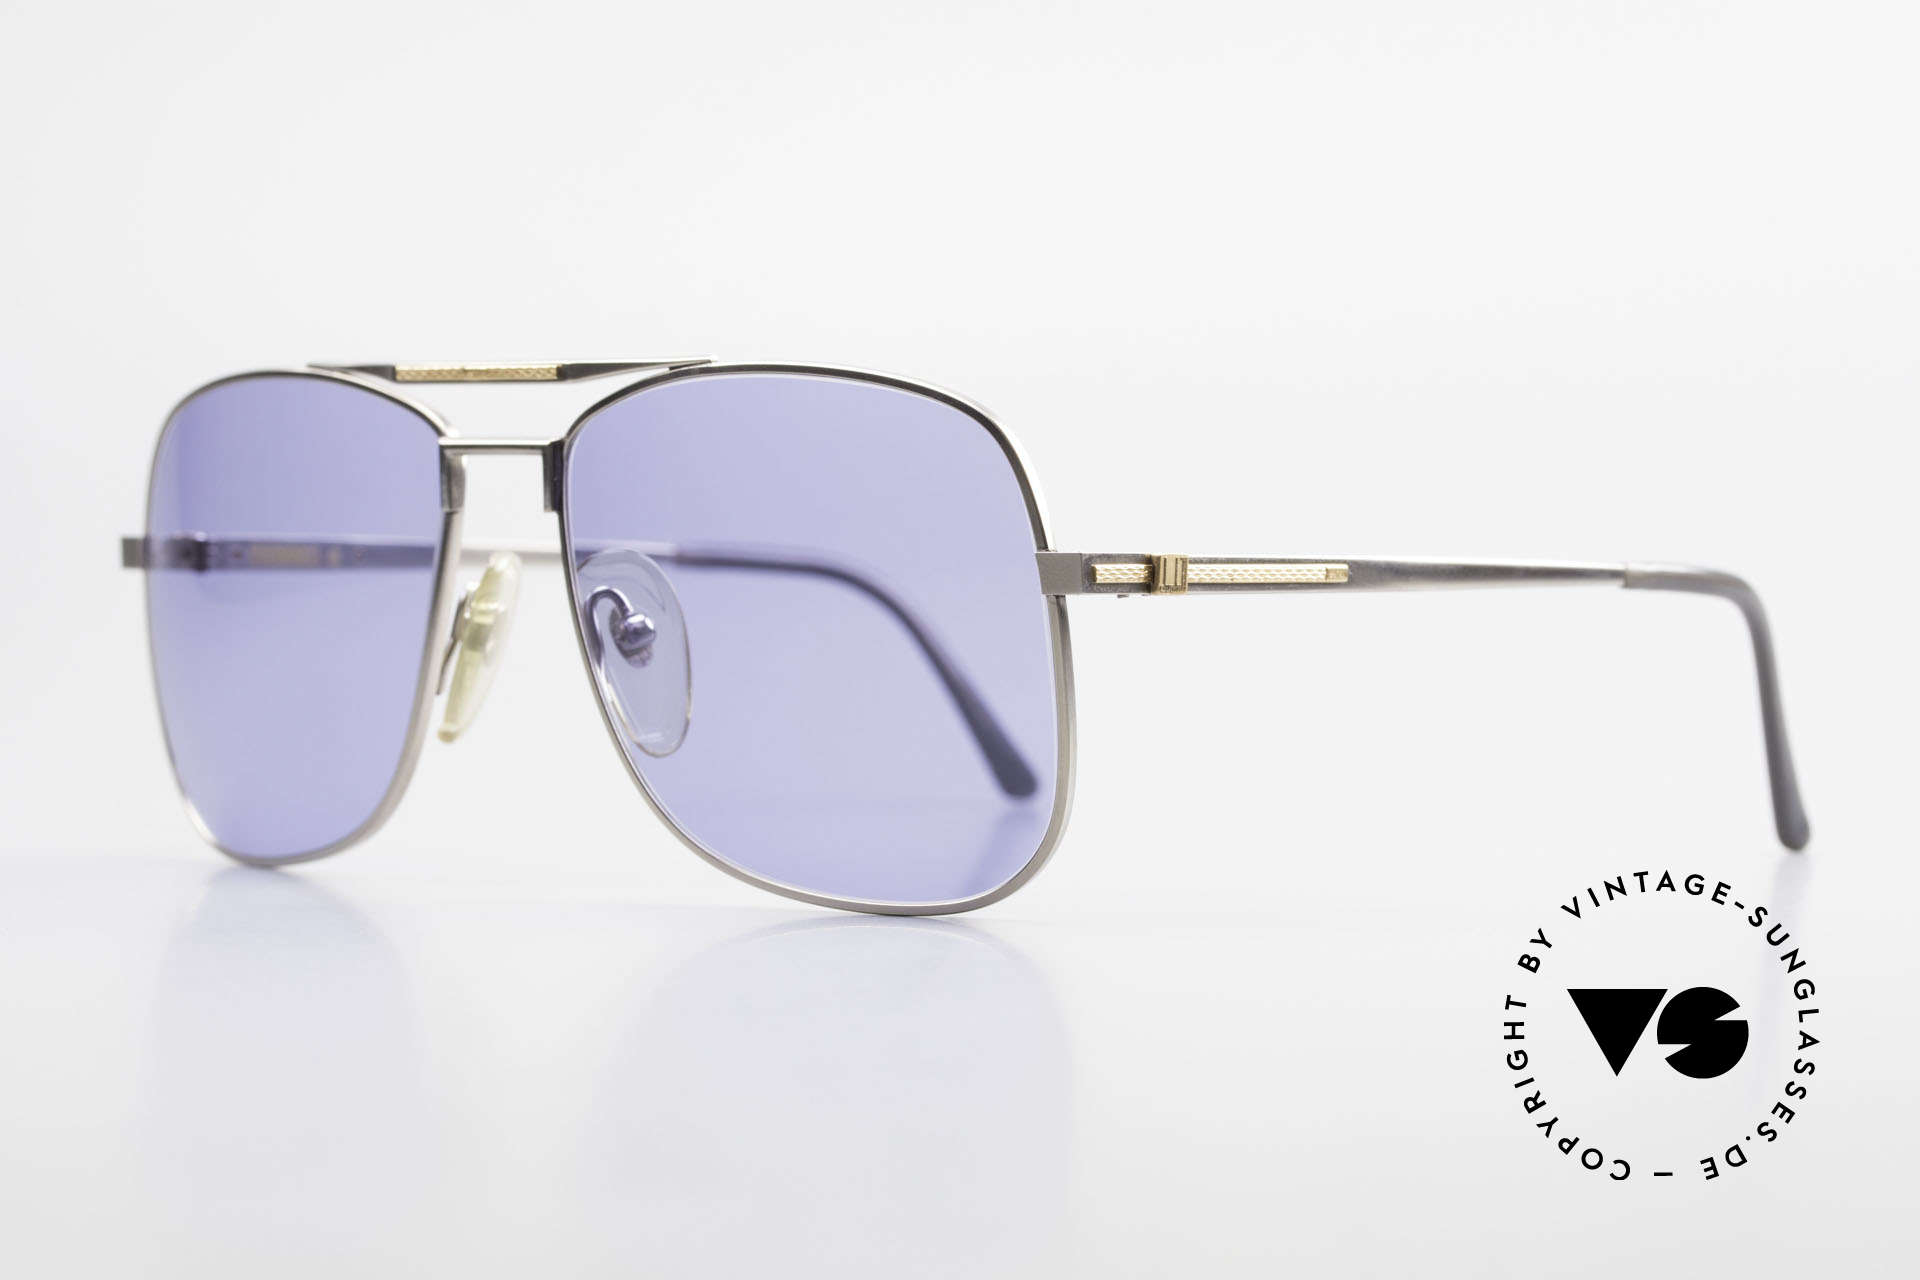 Dunhill 6038 18kt Gold Titanium 80s Shades, manufacturing costs in 1986 = 120,- DM (app. 75 USD), Made for Men